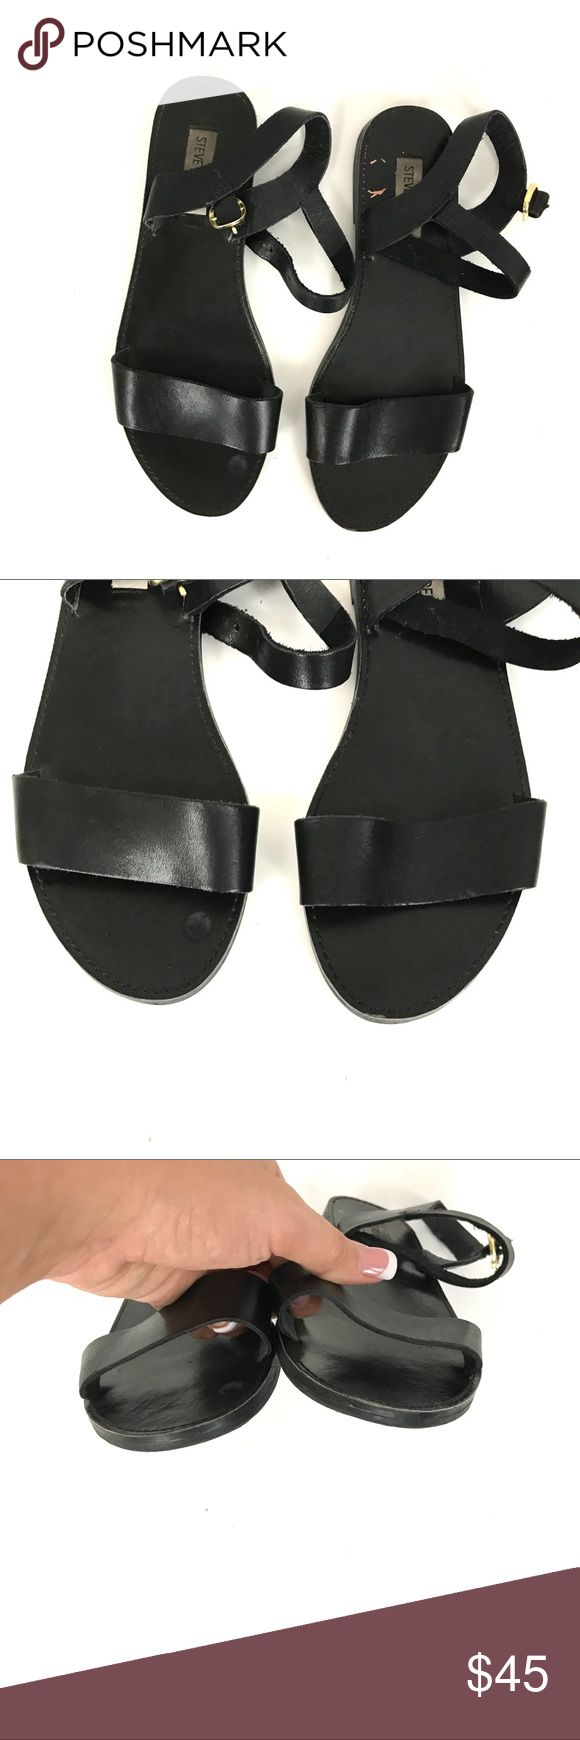 Steve Madden black ankle strap leather sandals Black leather. Strap across toes and ankle strap. Style name condon size 8. Gently used. Wear to the bottoms and light light wear to the straps. Steve Madden Shoes Sandals